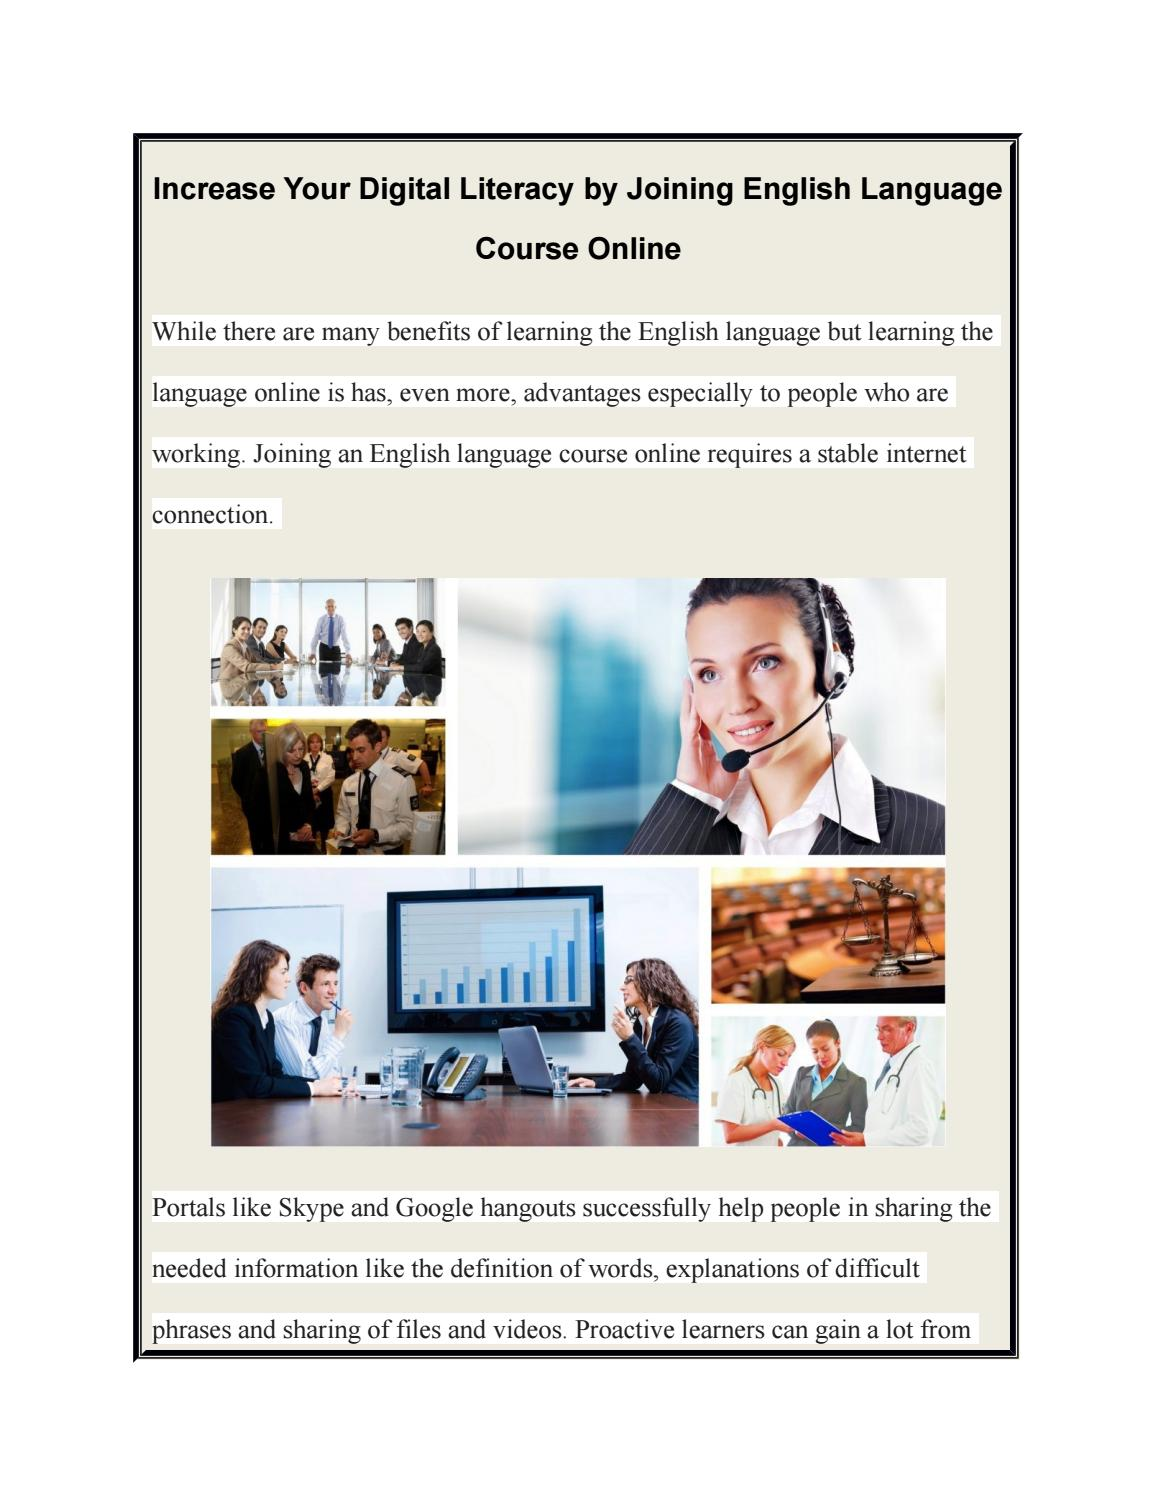 Advantages of learning English by Skype